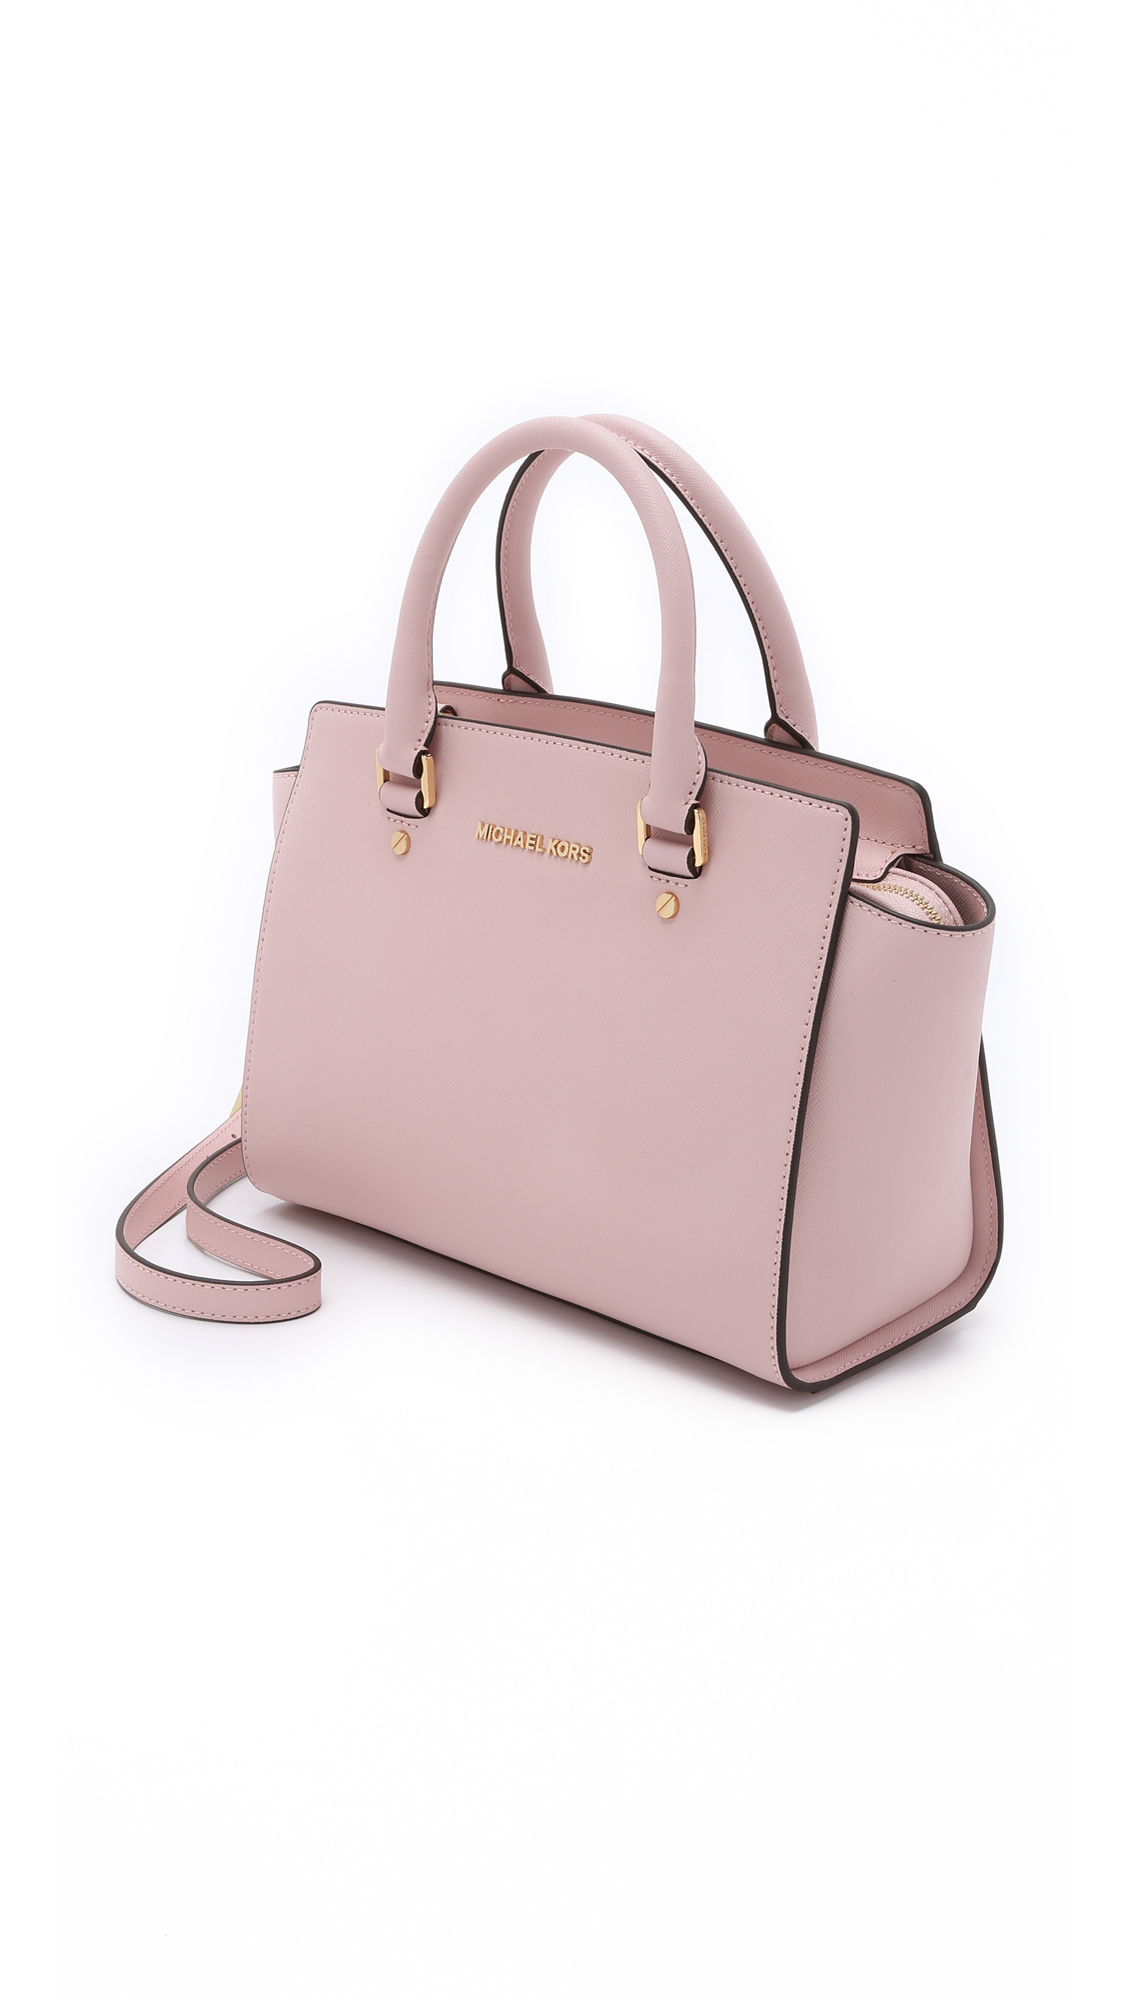 0a74e7d8b317 Previously sold at Shopbop · Womens Michael By Michael Kors Selma Michael  Kors - Selma Medium Top Zip Satchel in Blossom, ...